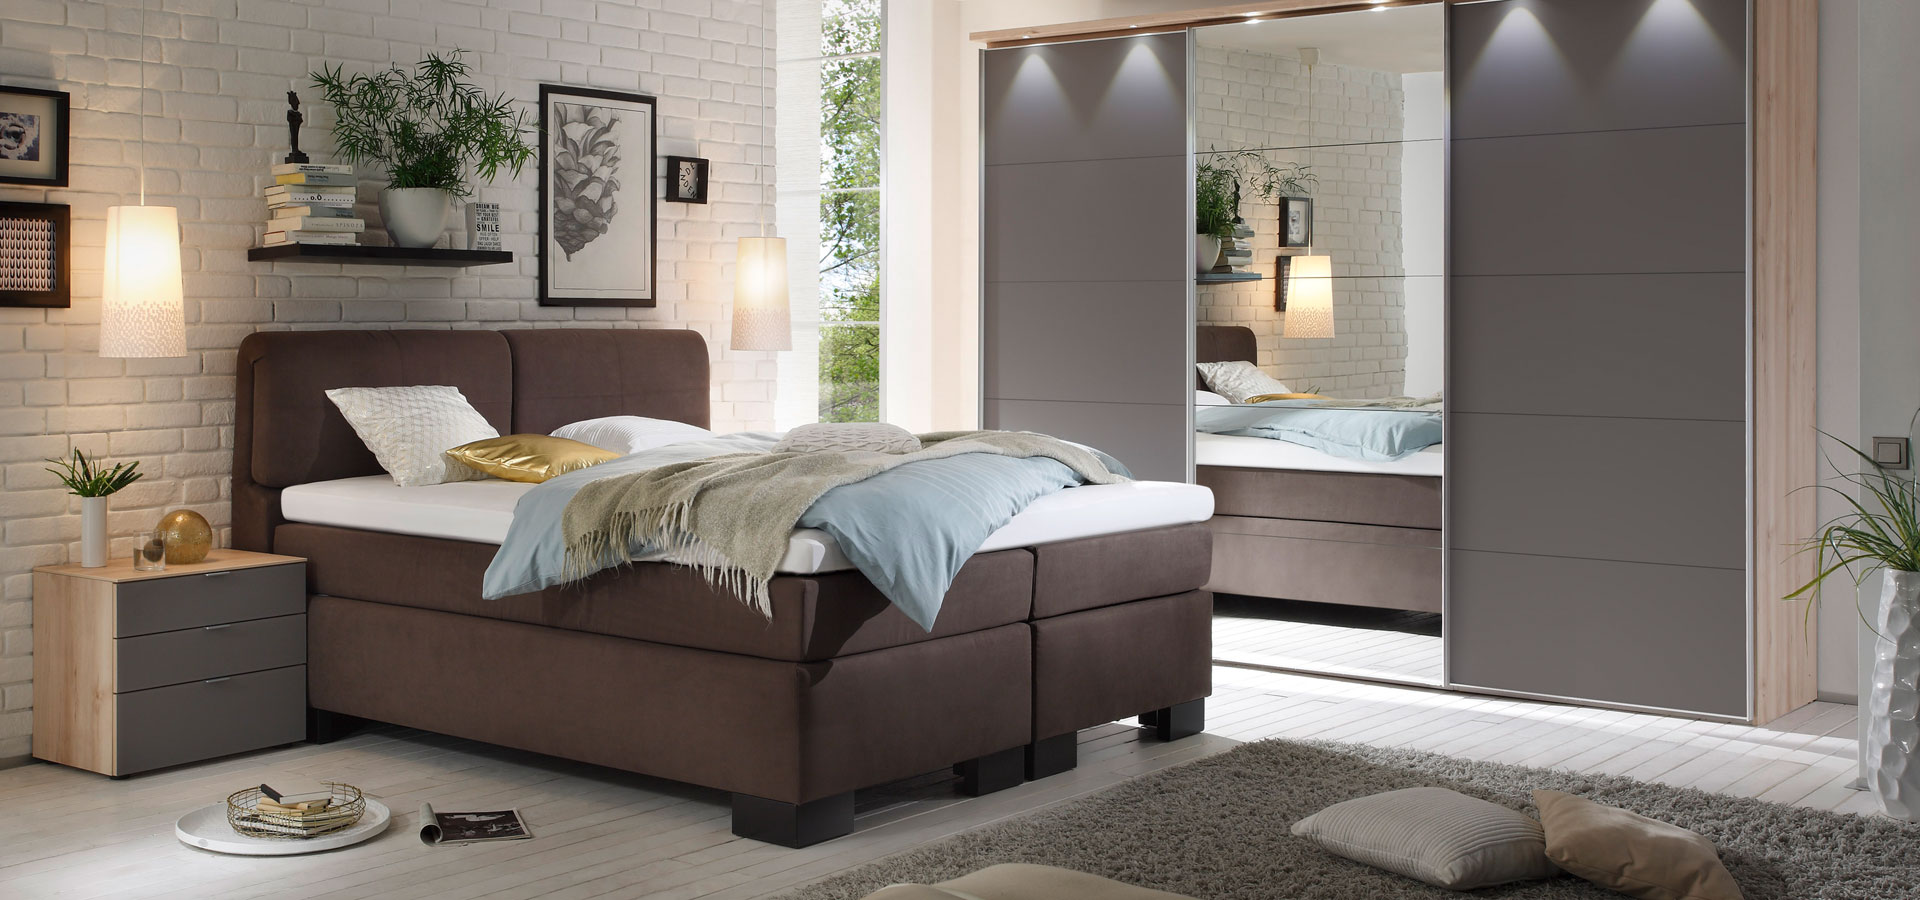 boxspringbetten 180x200 140x200 bei zeottexx gartenm belausstellung zeottexx. Black Bedroom Furniture Sets. Home Design Ideas